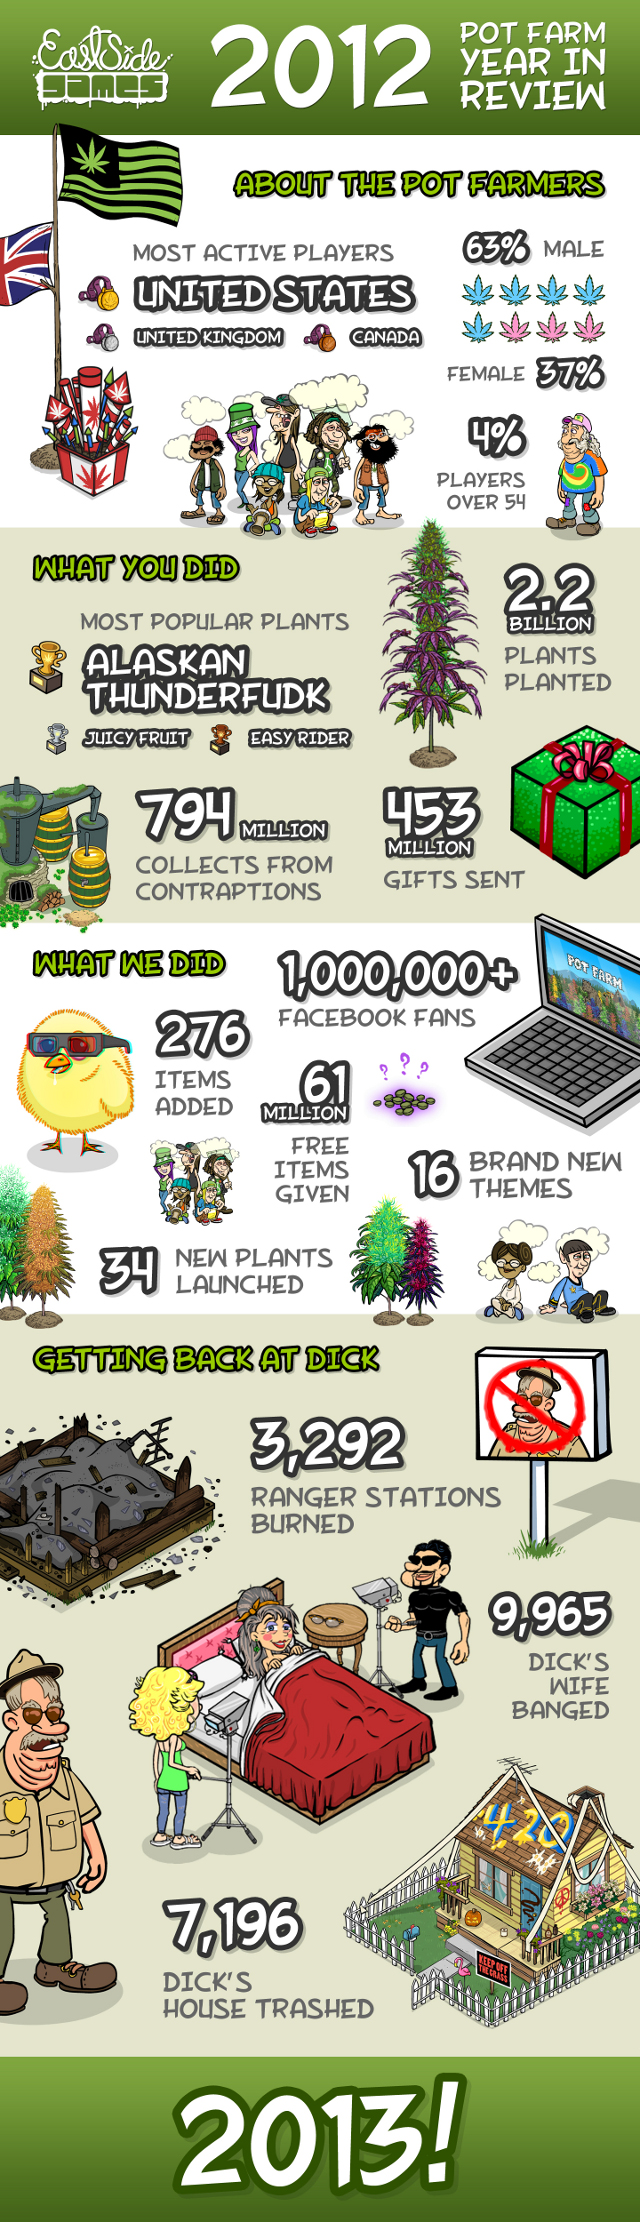 2012 PT Year in Review Infographic